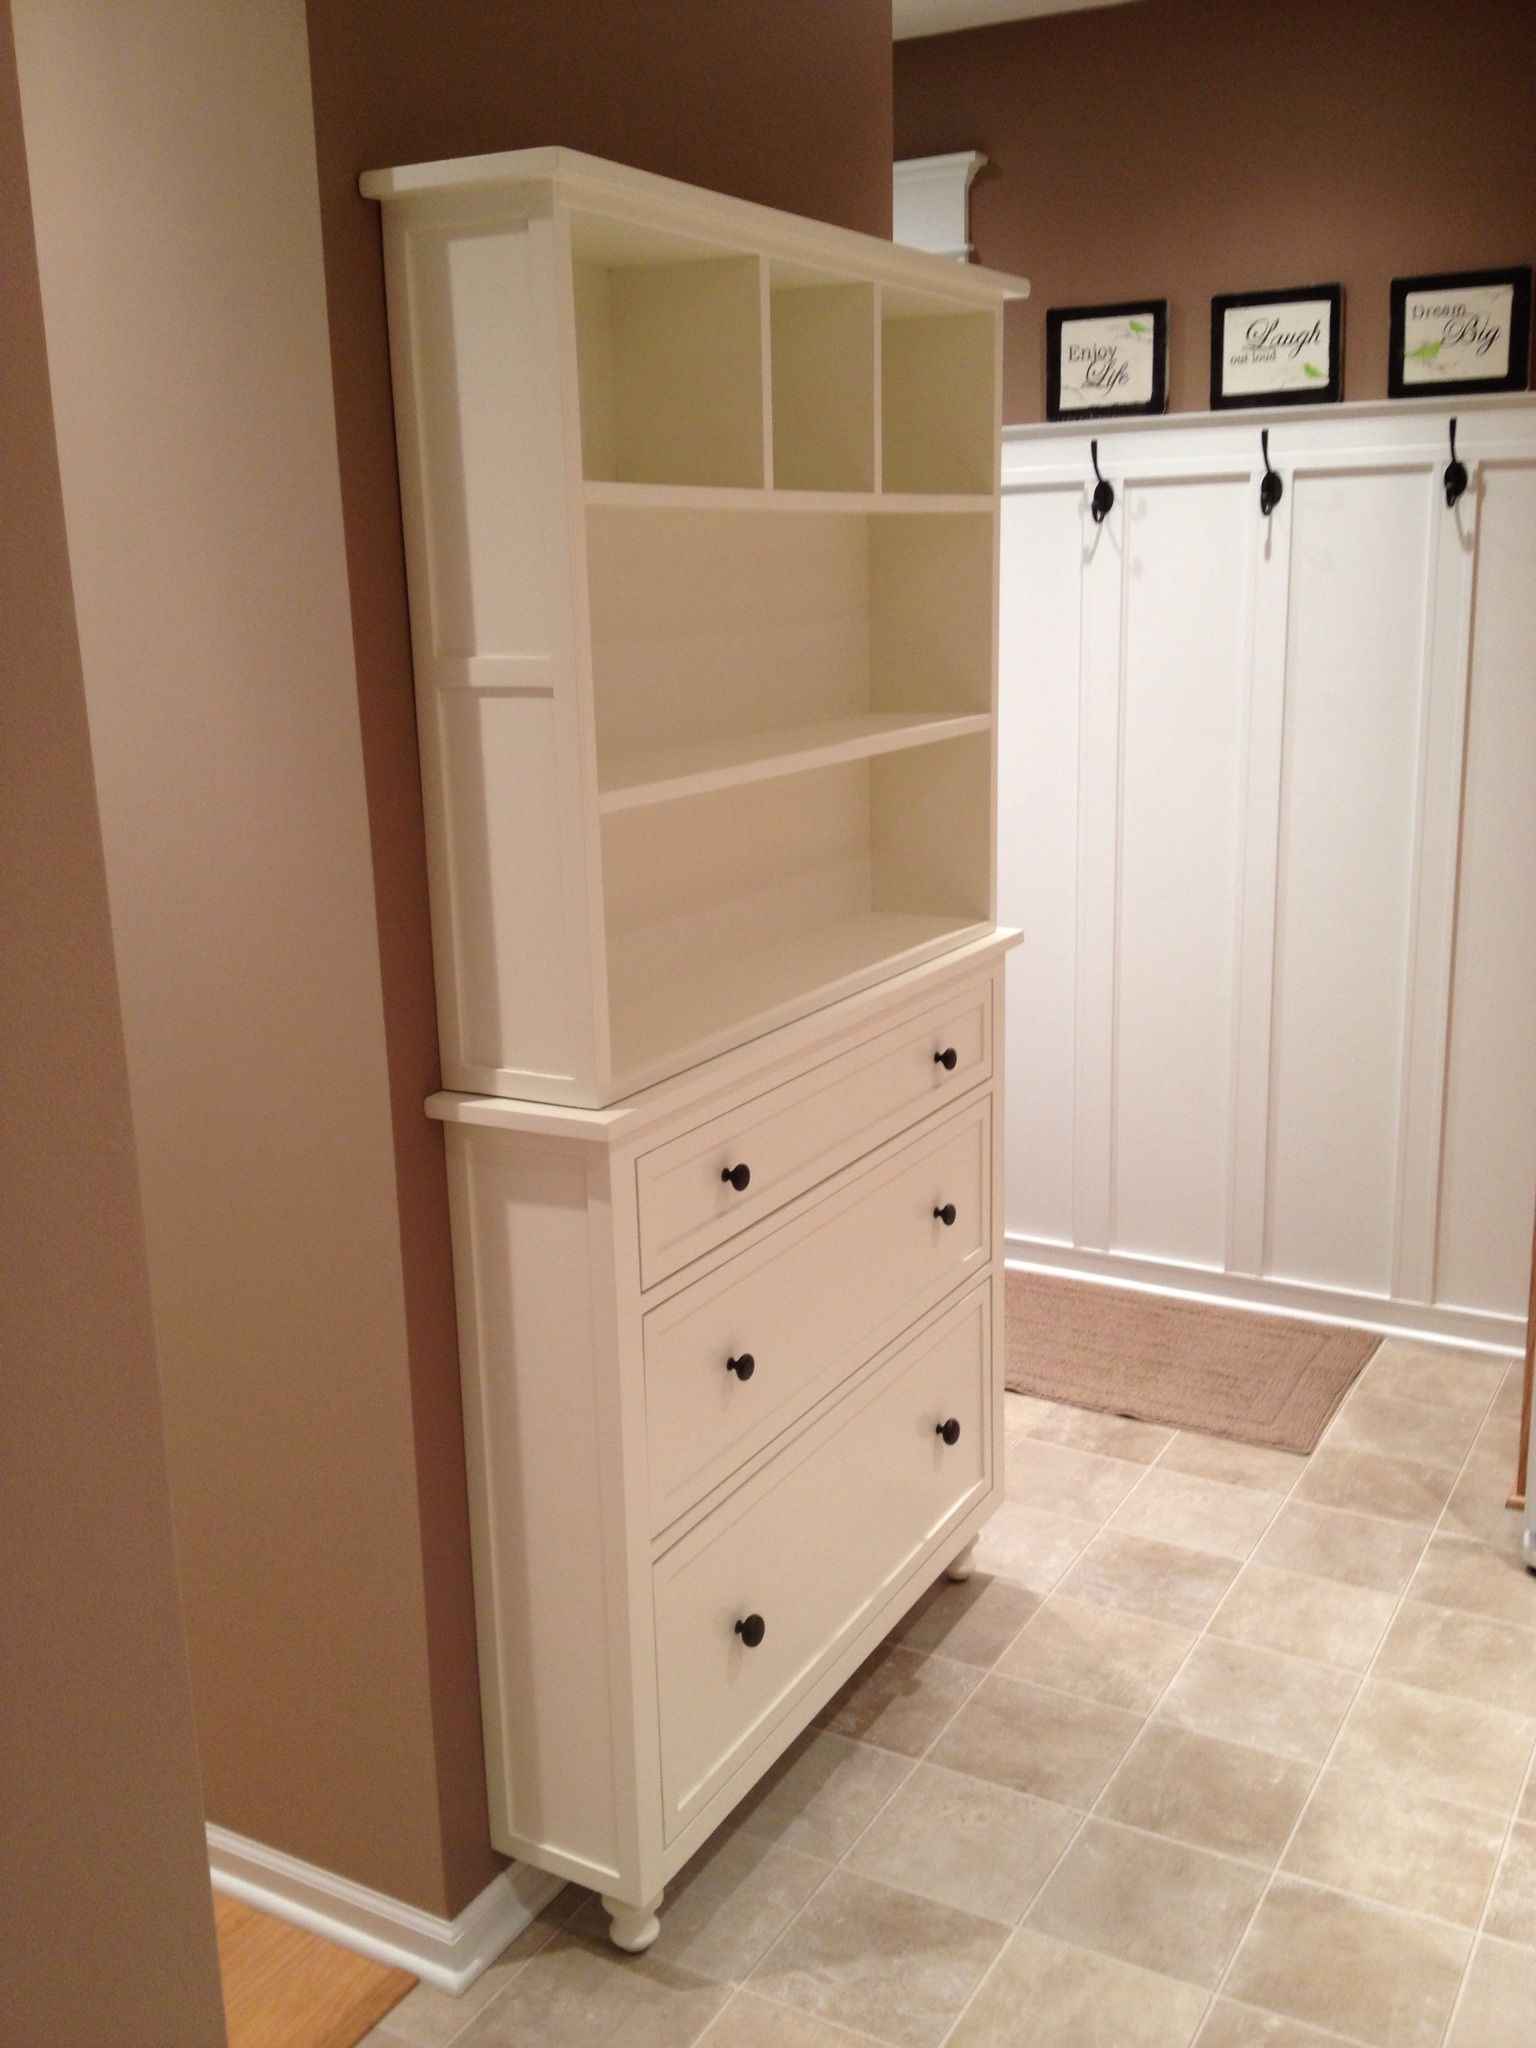 Pin by Michele Lascio on Mudroom  Kreg jig projects DIY